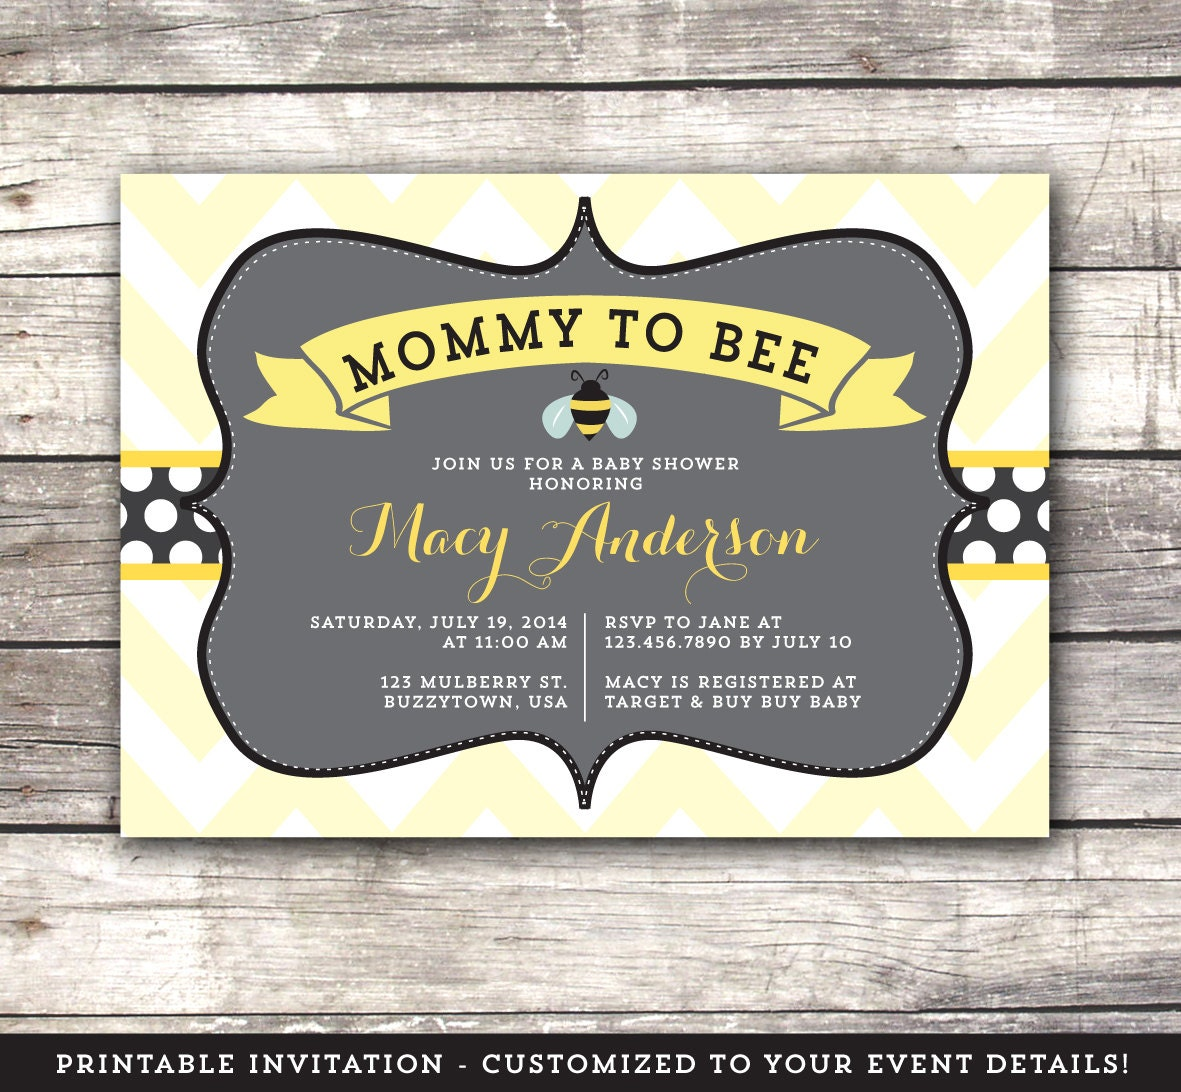 bumble bee baby shower invitation mommy to bee invite